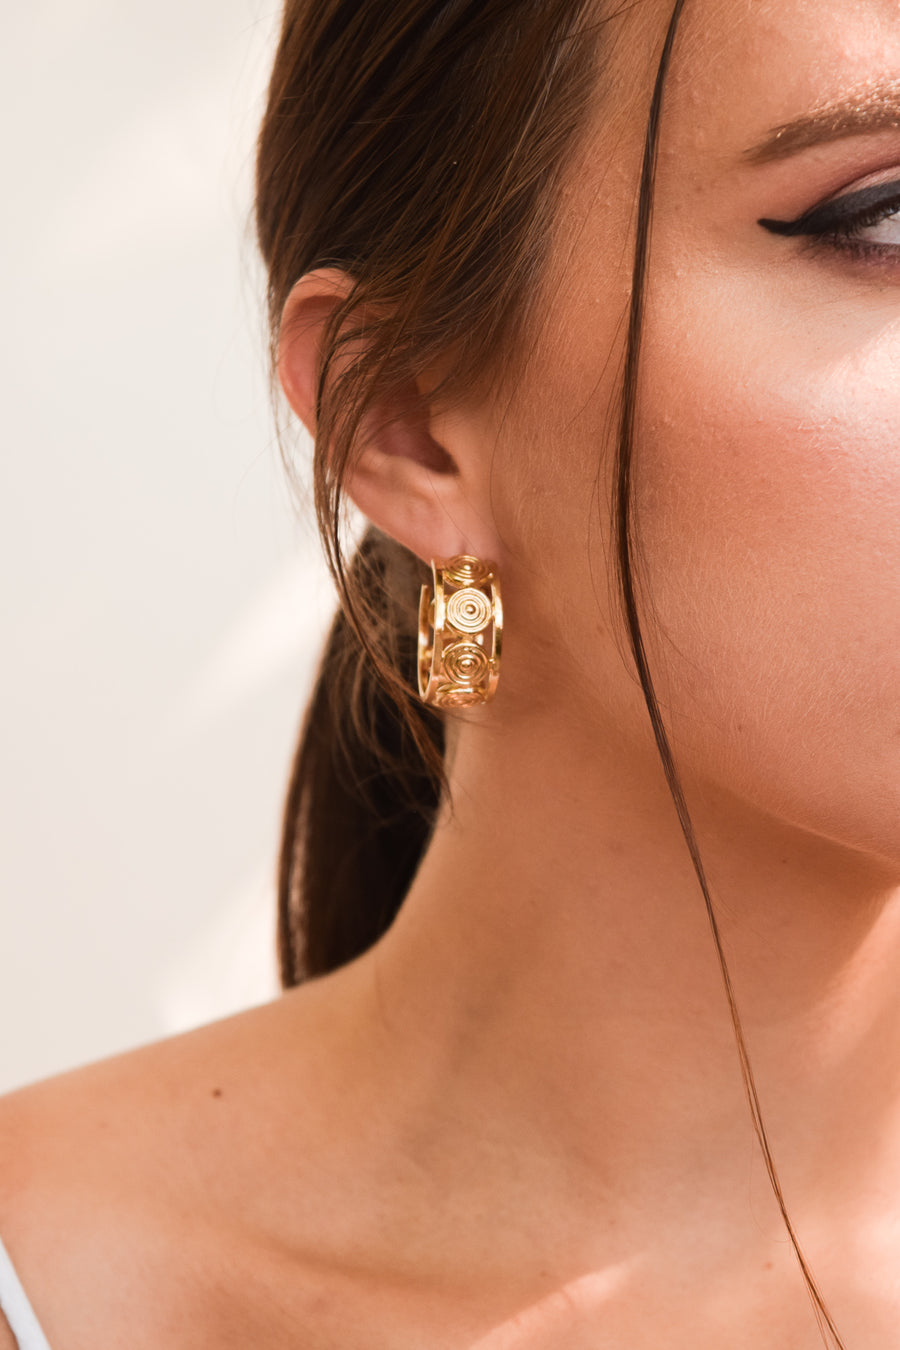 Aluna mini hoop earrings on model. 14k yellow gold hoops with circular design and are 1 inch in diameter. Handmade by local jewelry designer, Nina Berenato, in Austin, Texas.